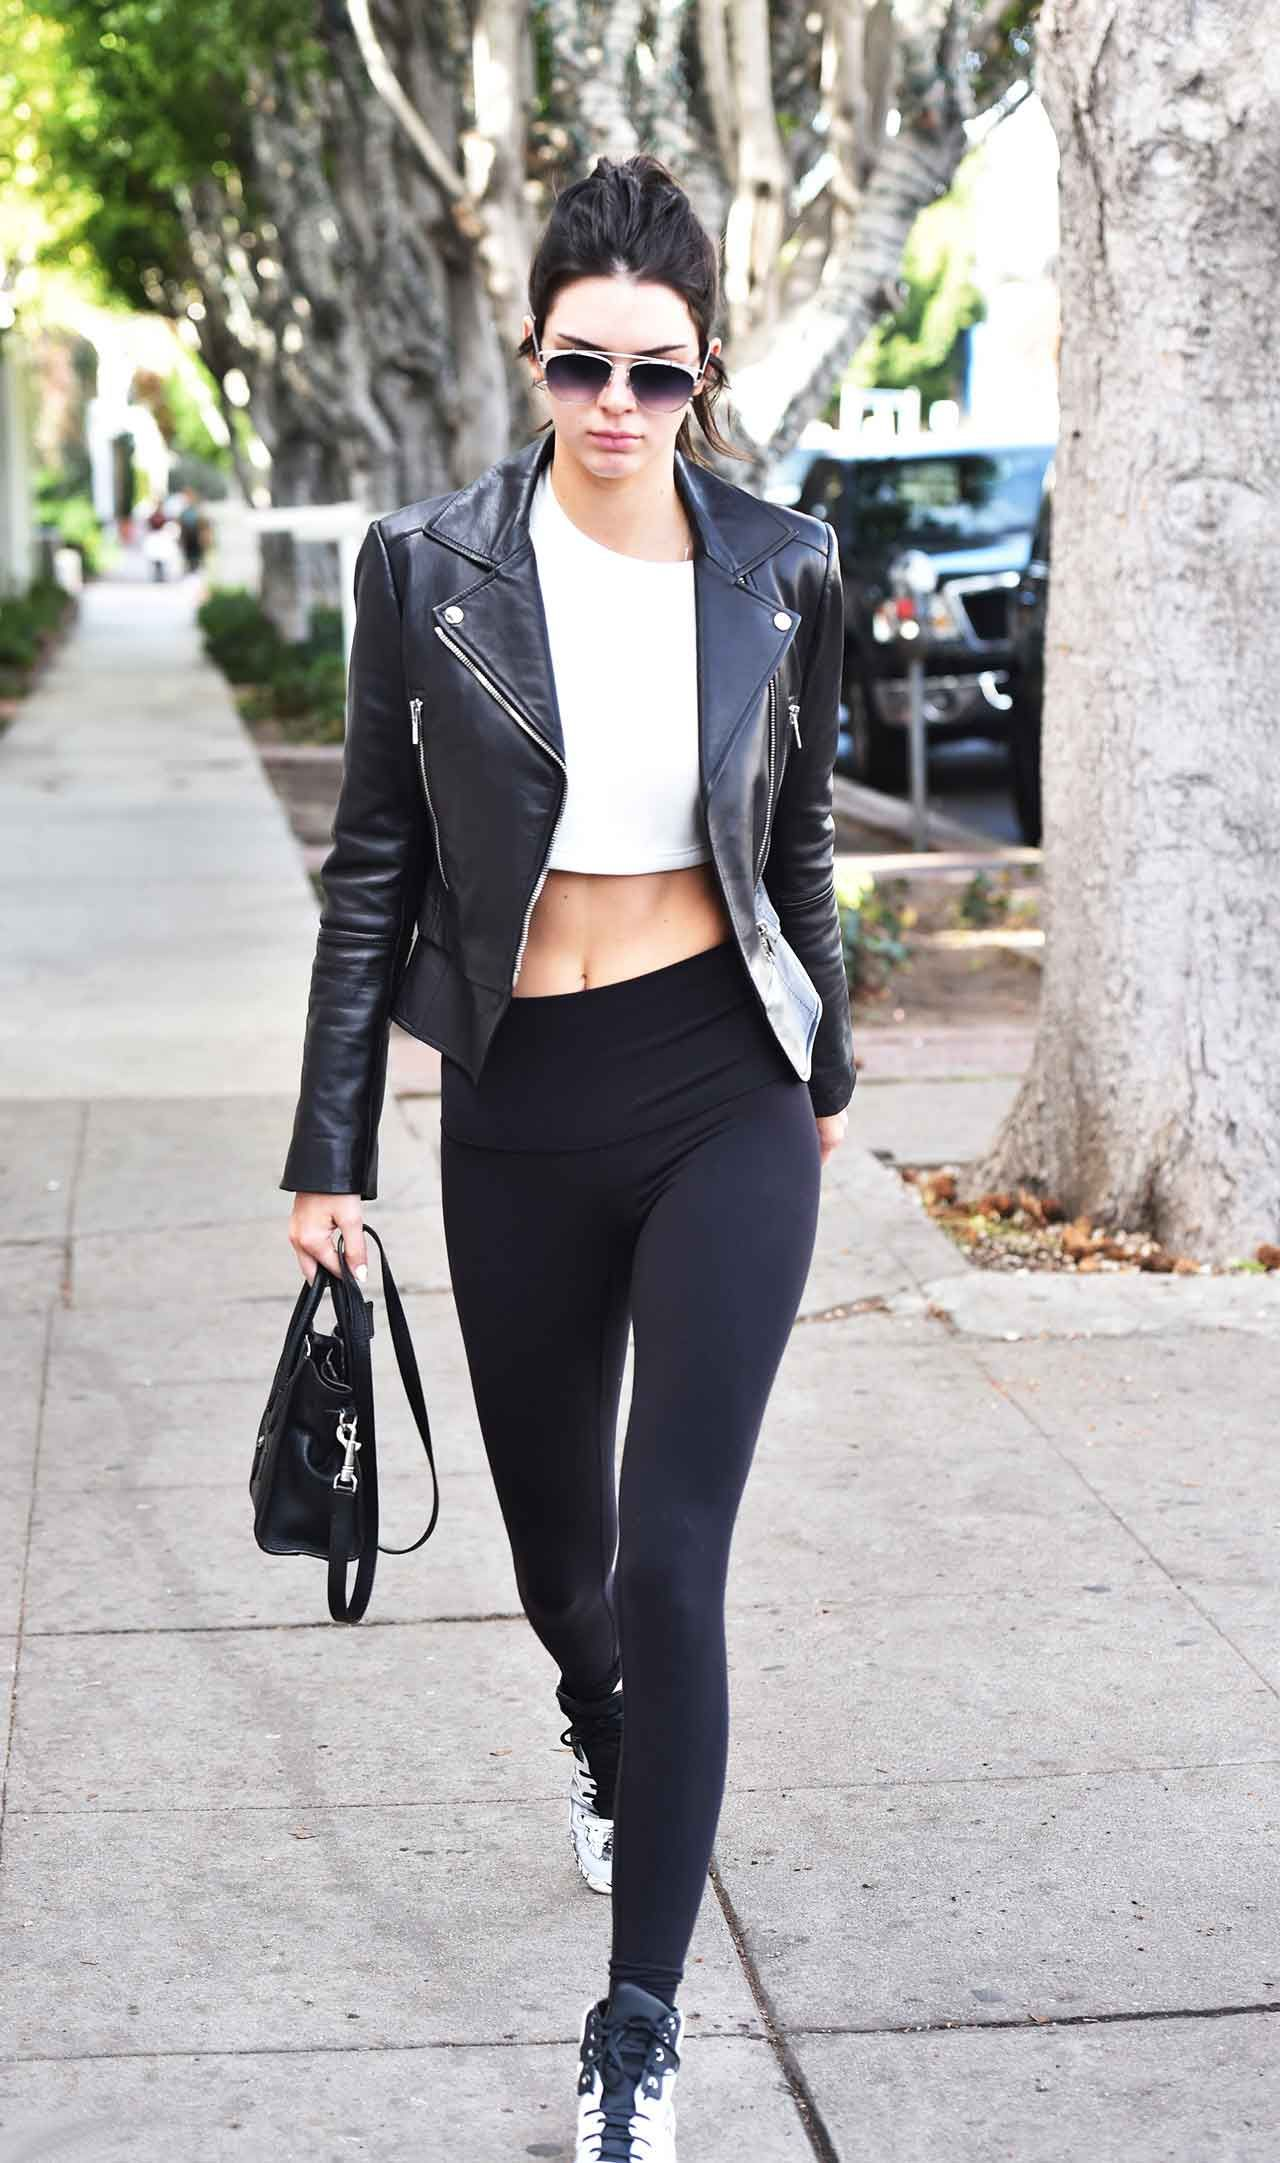 928d6f86651b7 Celebrities Are Obsessed With This Leggings Brand   Fashion ...